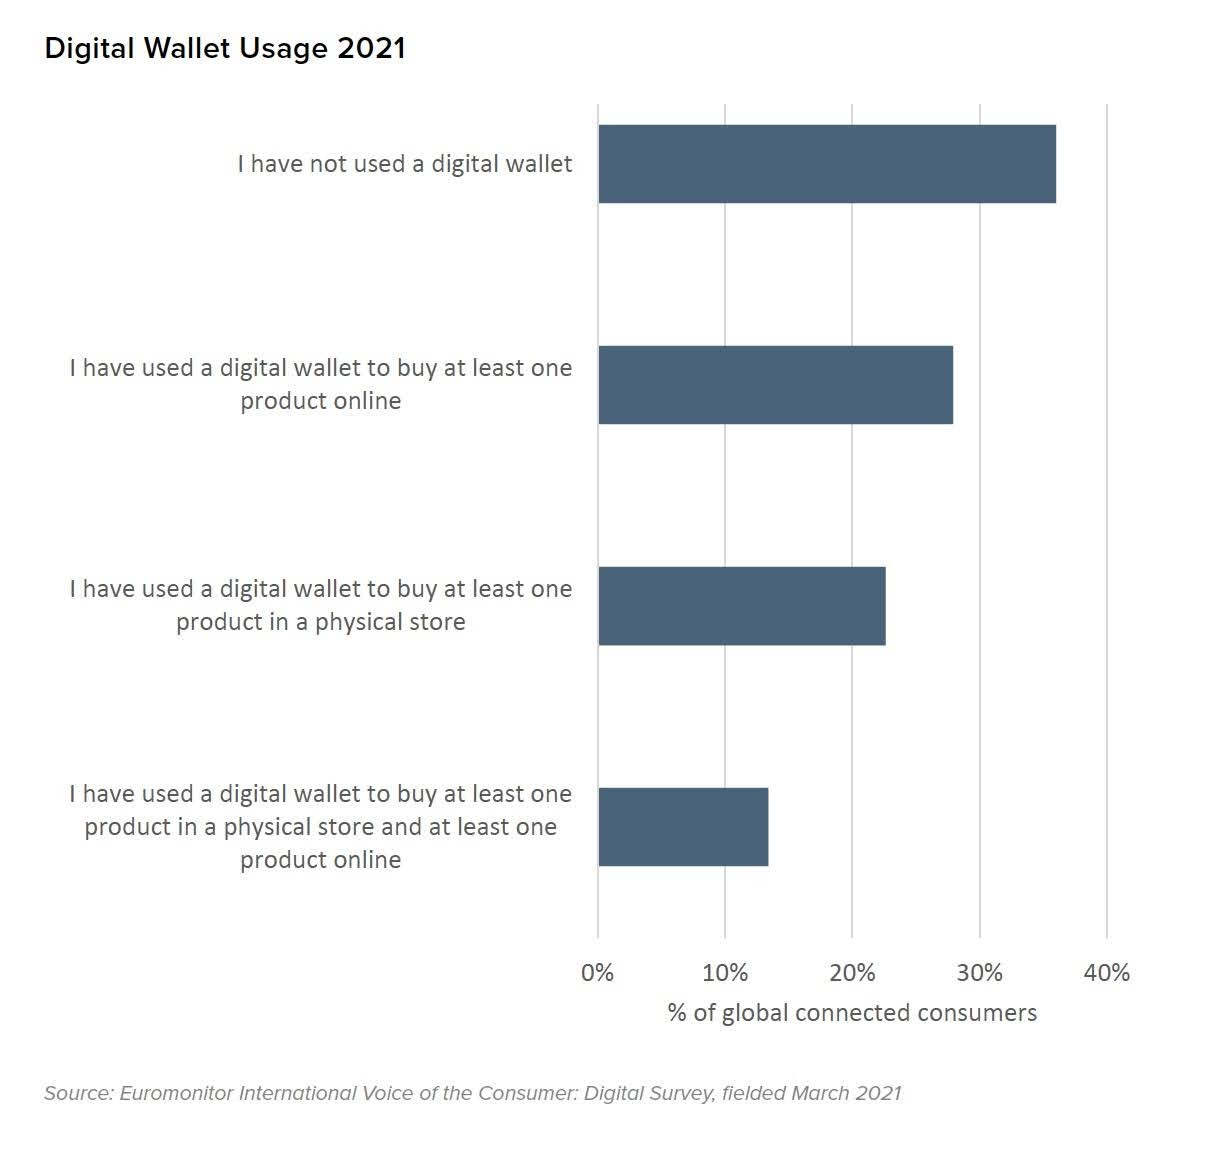 Digital Wallet Usage 2021. Source: Euromonitor International Voice of the Consumer: Digital Survey, fielded March 2021